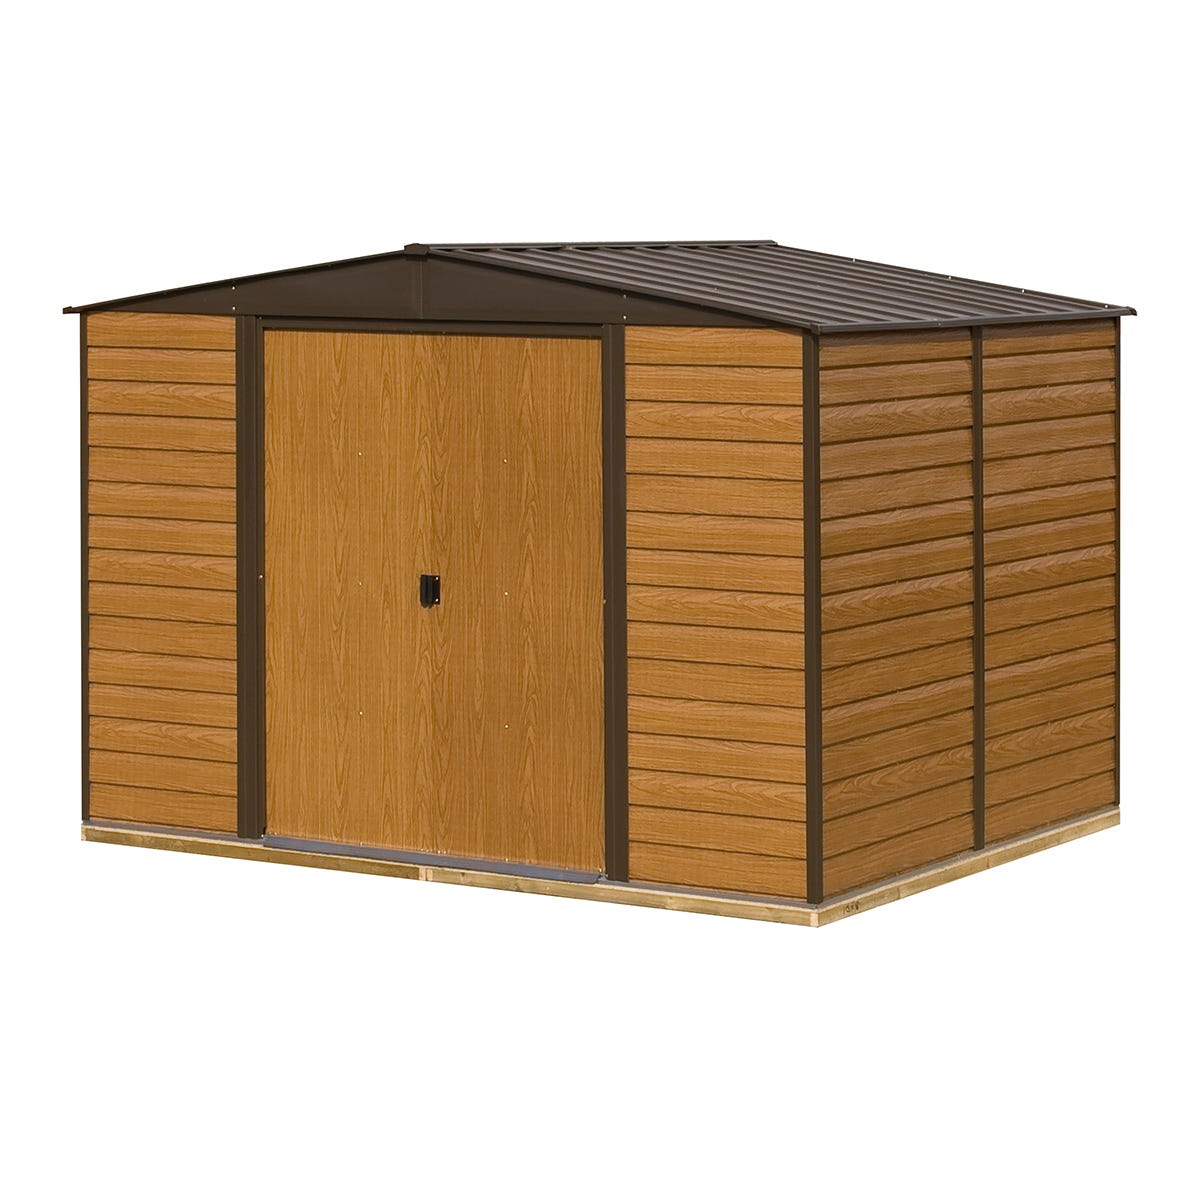 Image of Rowlinson 10 x 12 Woodvale Metal Apex Shed With Floor